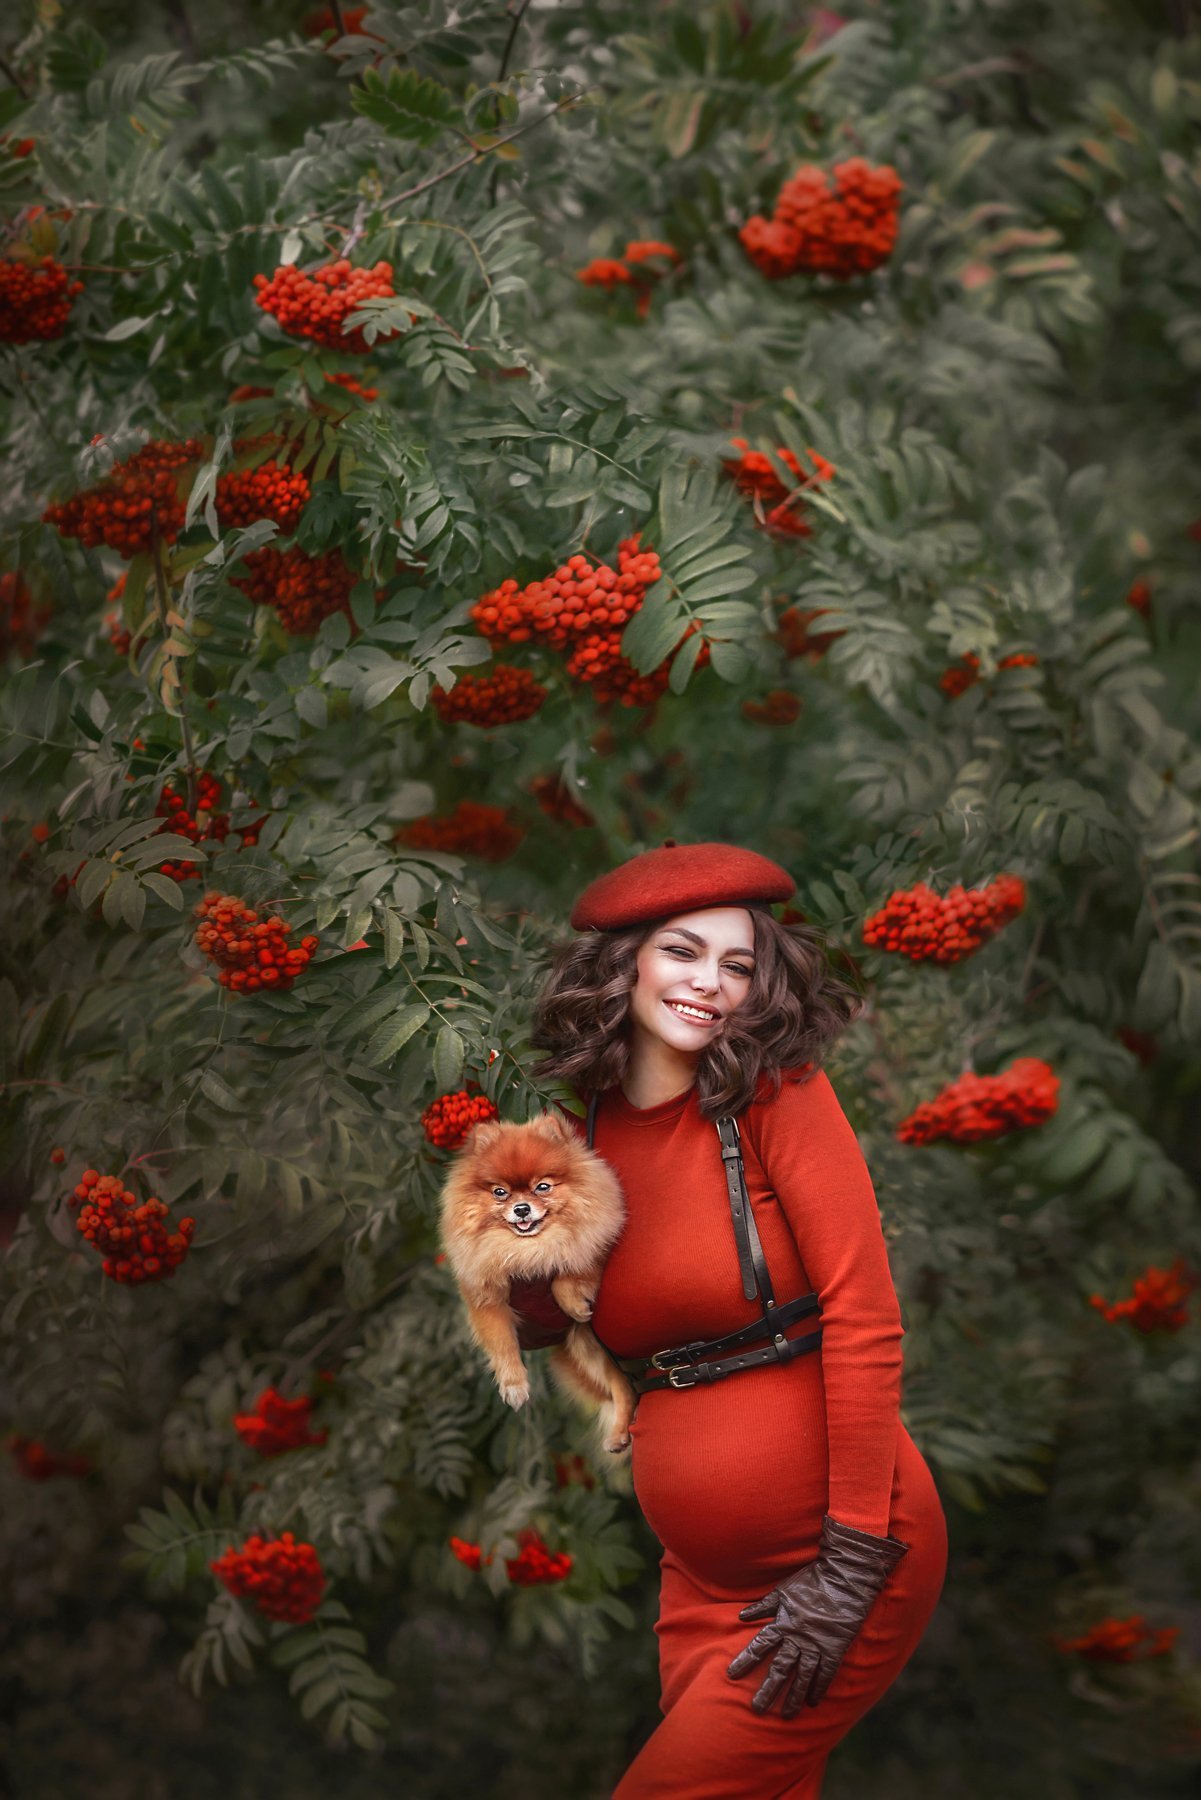 autumn, October, Rowan, pregnancy, waiting, smile, laugh, beauty, dog, beret, portrait, joy, red, pregnant, woman, beautiful girl, curls, Ilona